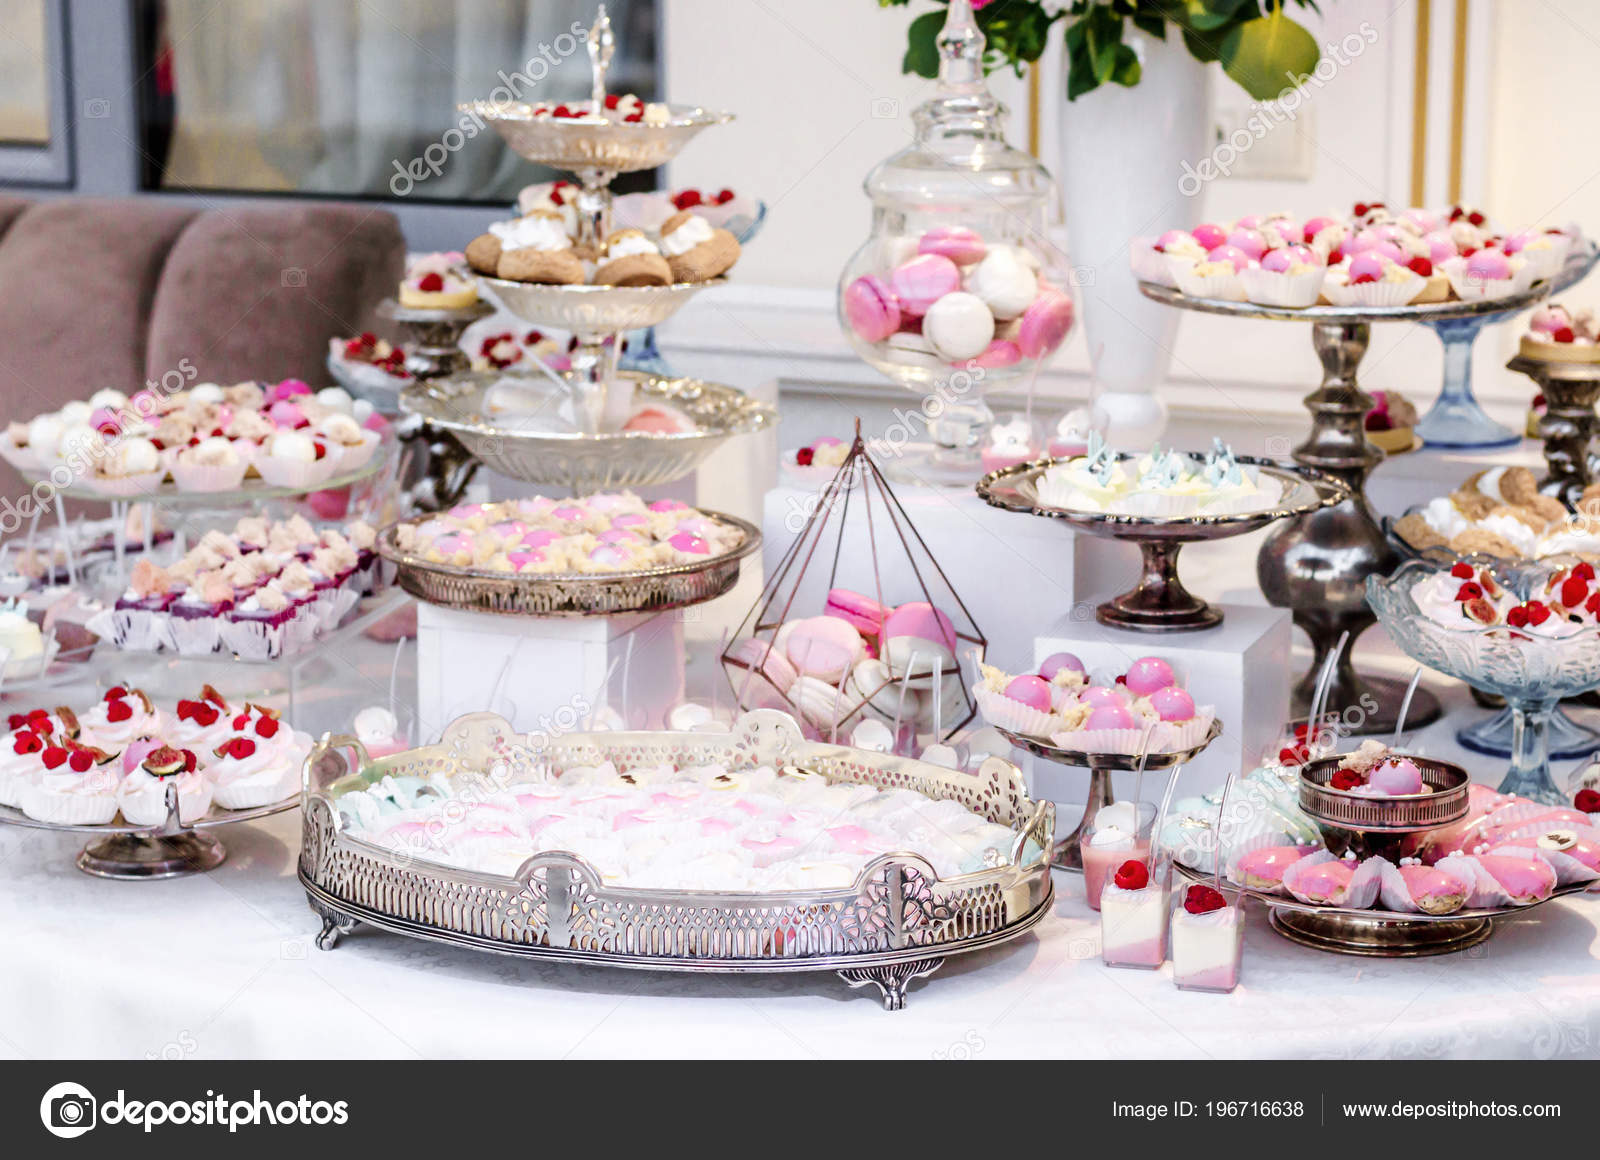 Delicious Wedding Reception Candy Bar Dessert Table Full Cakes